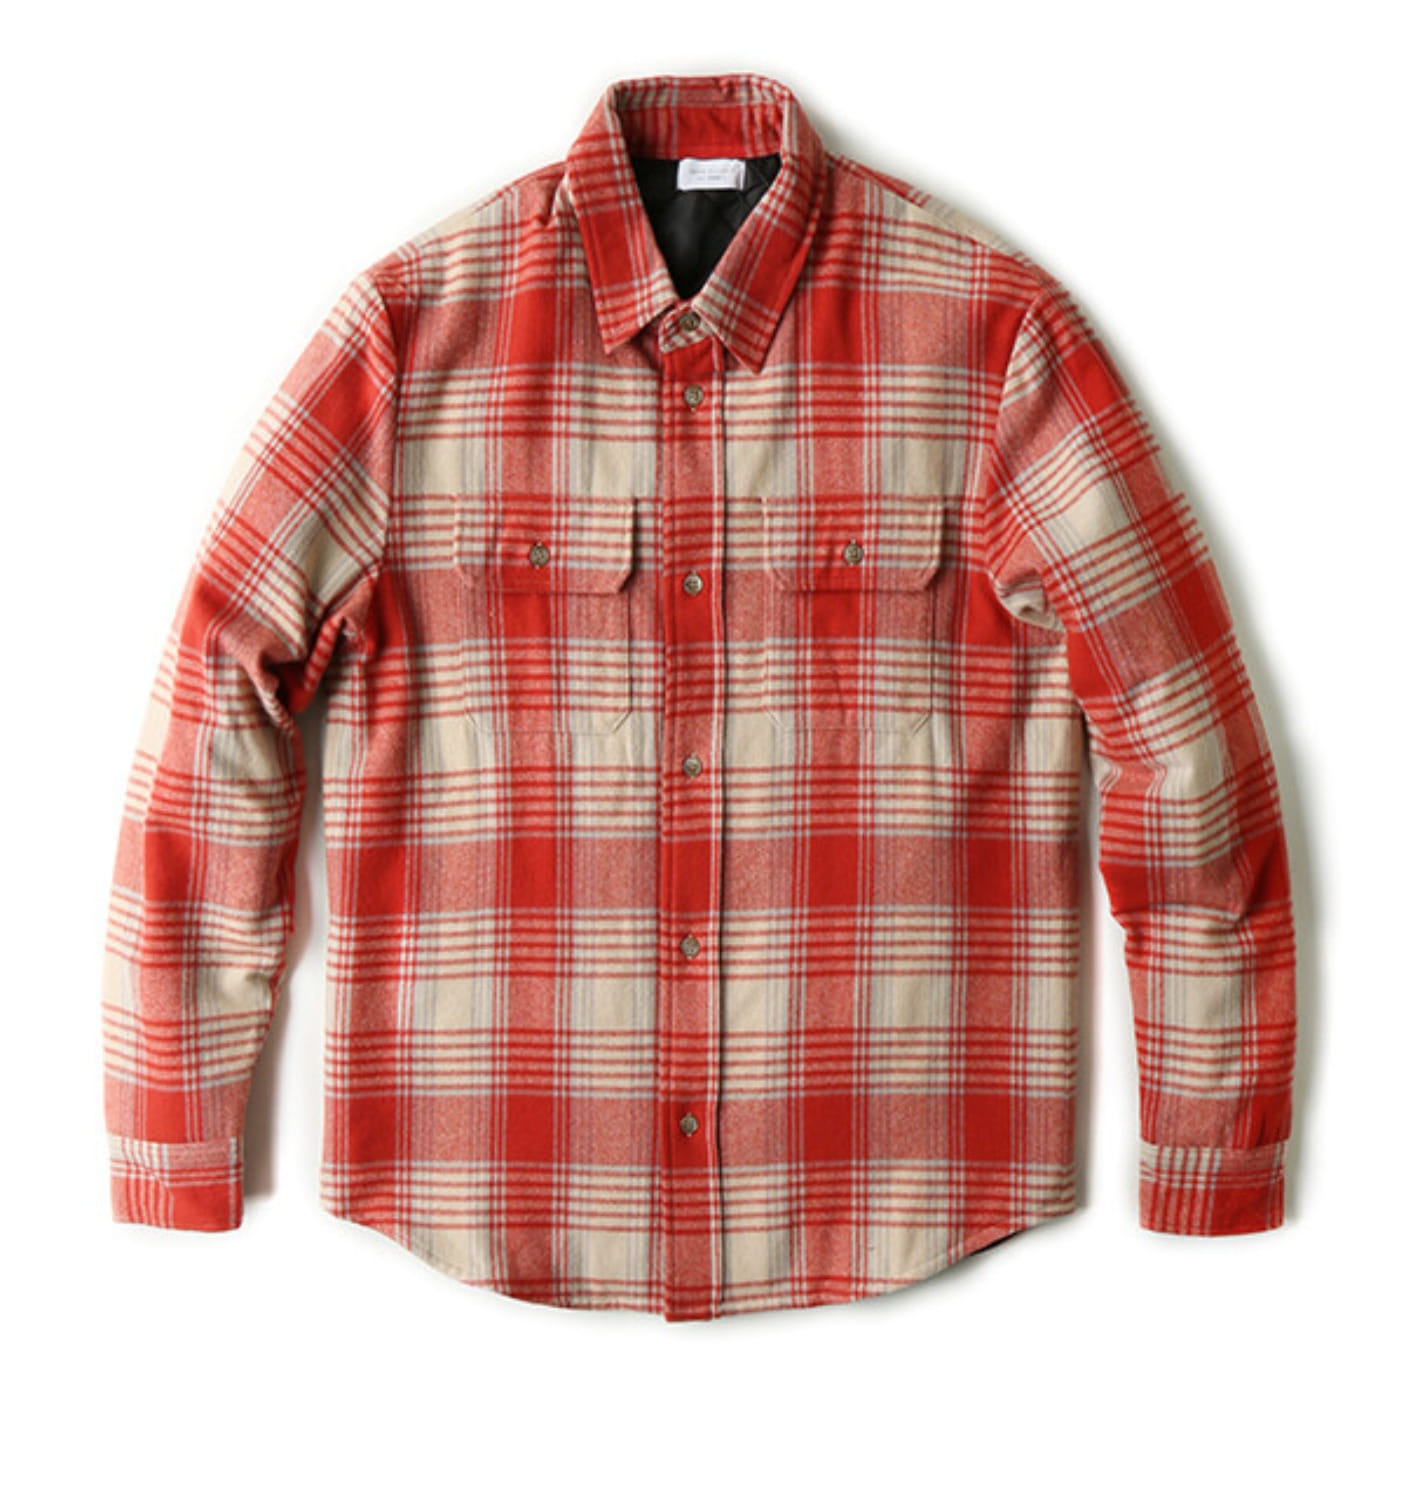 WOOL JUPITER SHIRT RED/NATURAL